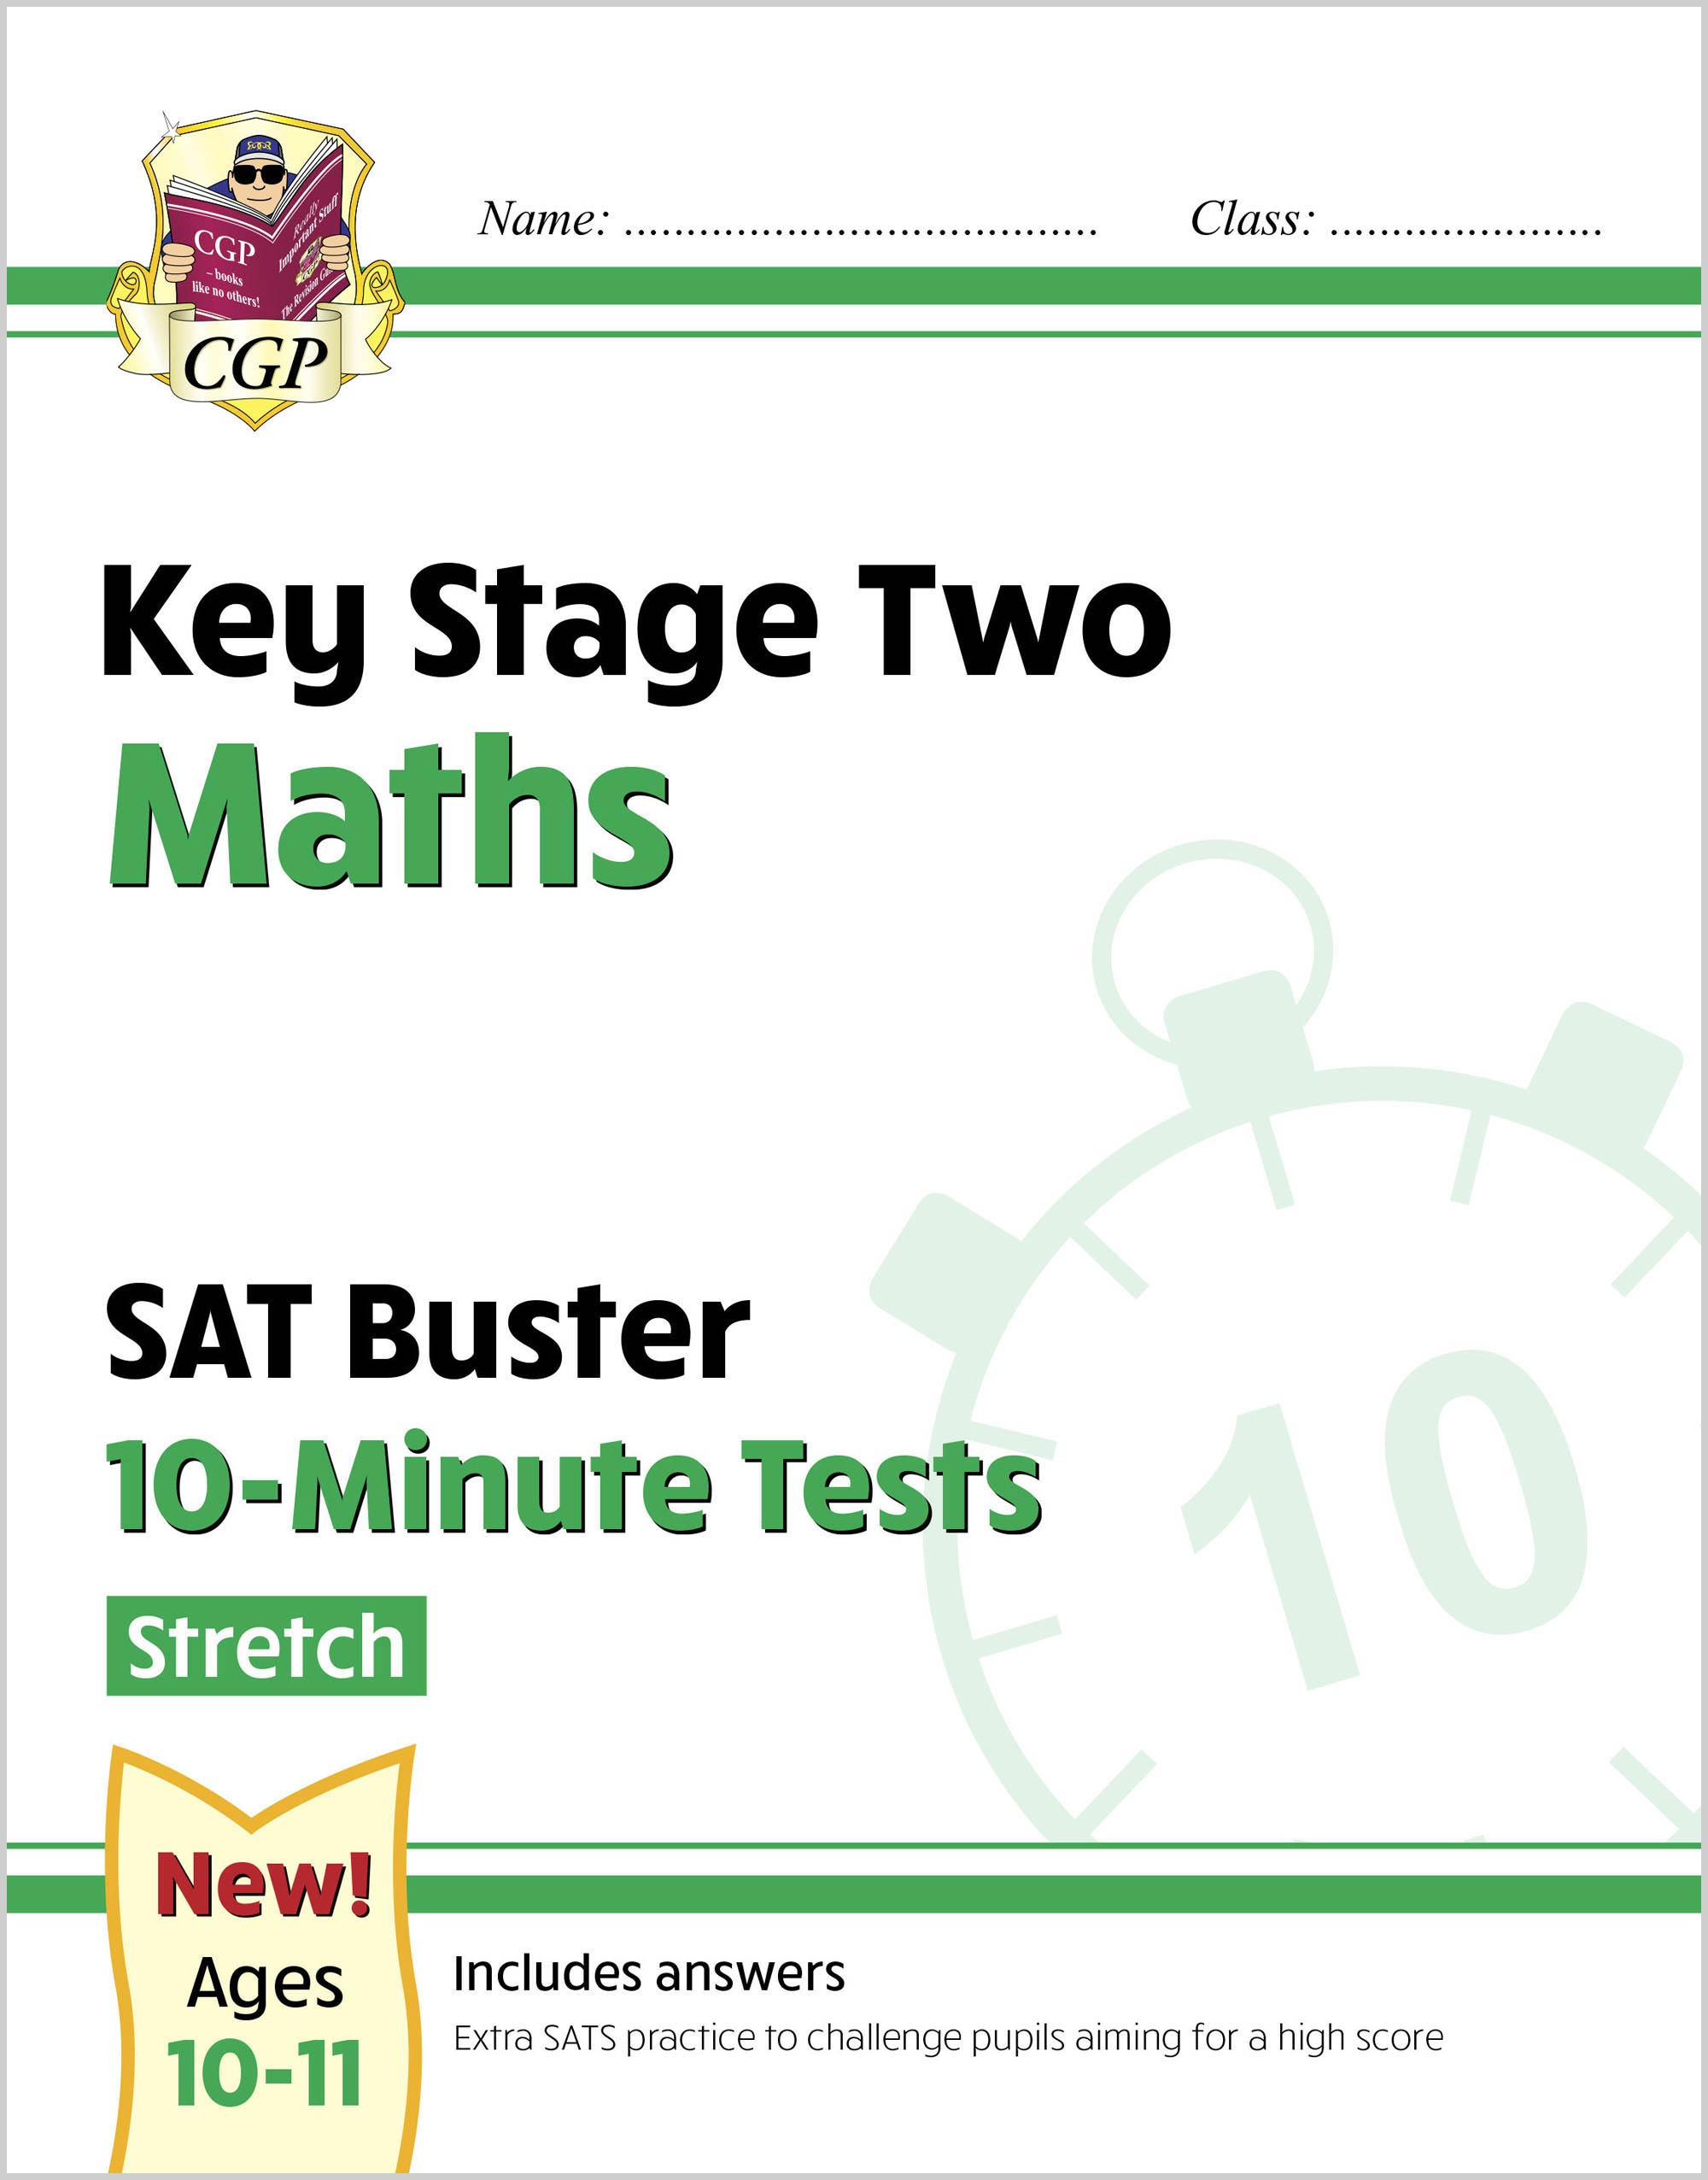 MLHXP22DK - New KS2 Maths SAT Buster 10-Minute Tests - Stretch (for the 2021 tests)